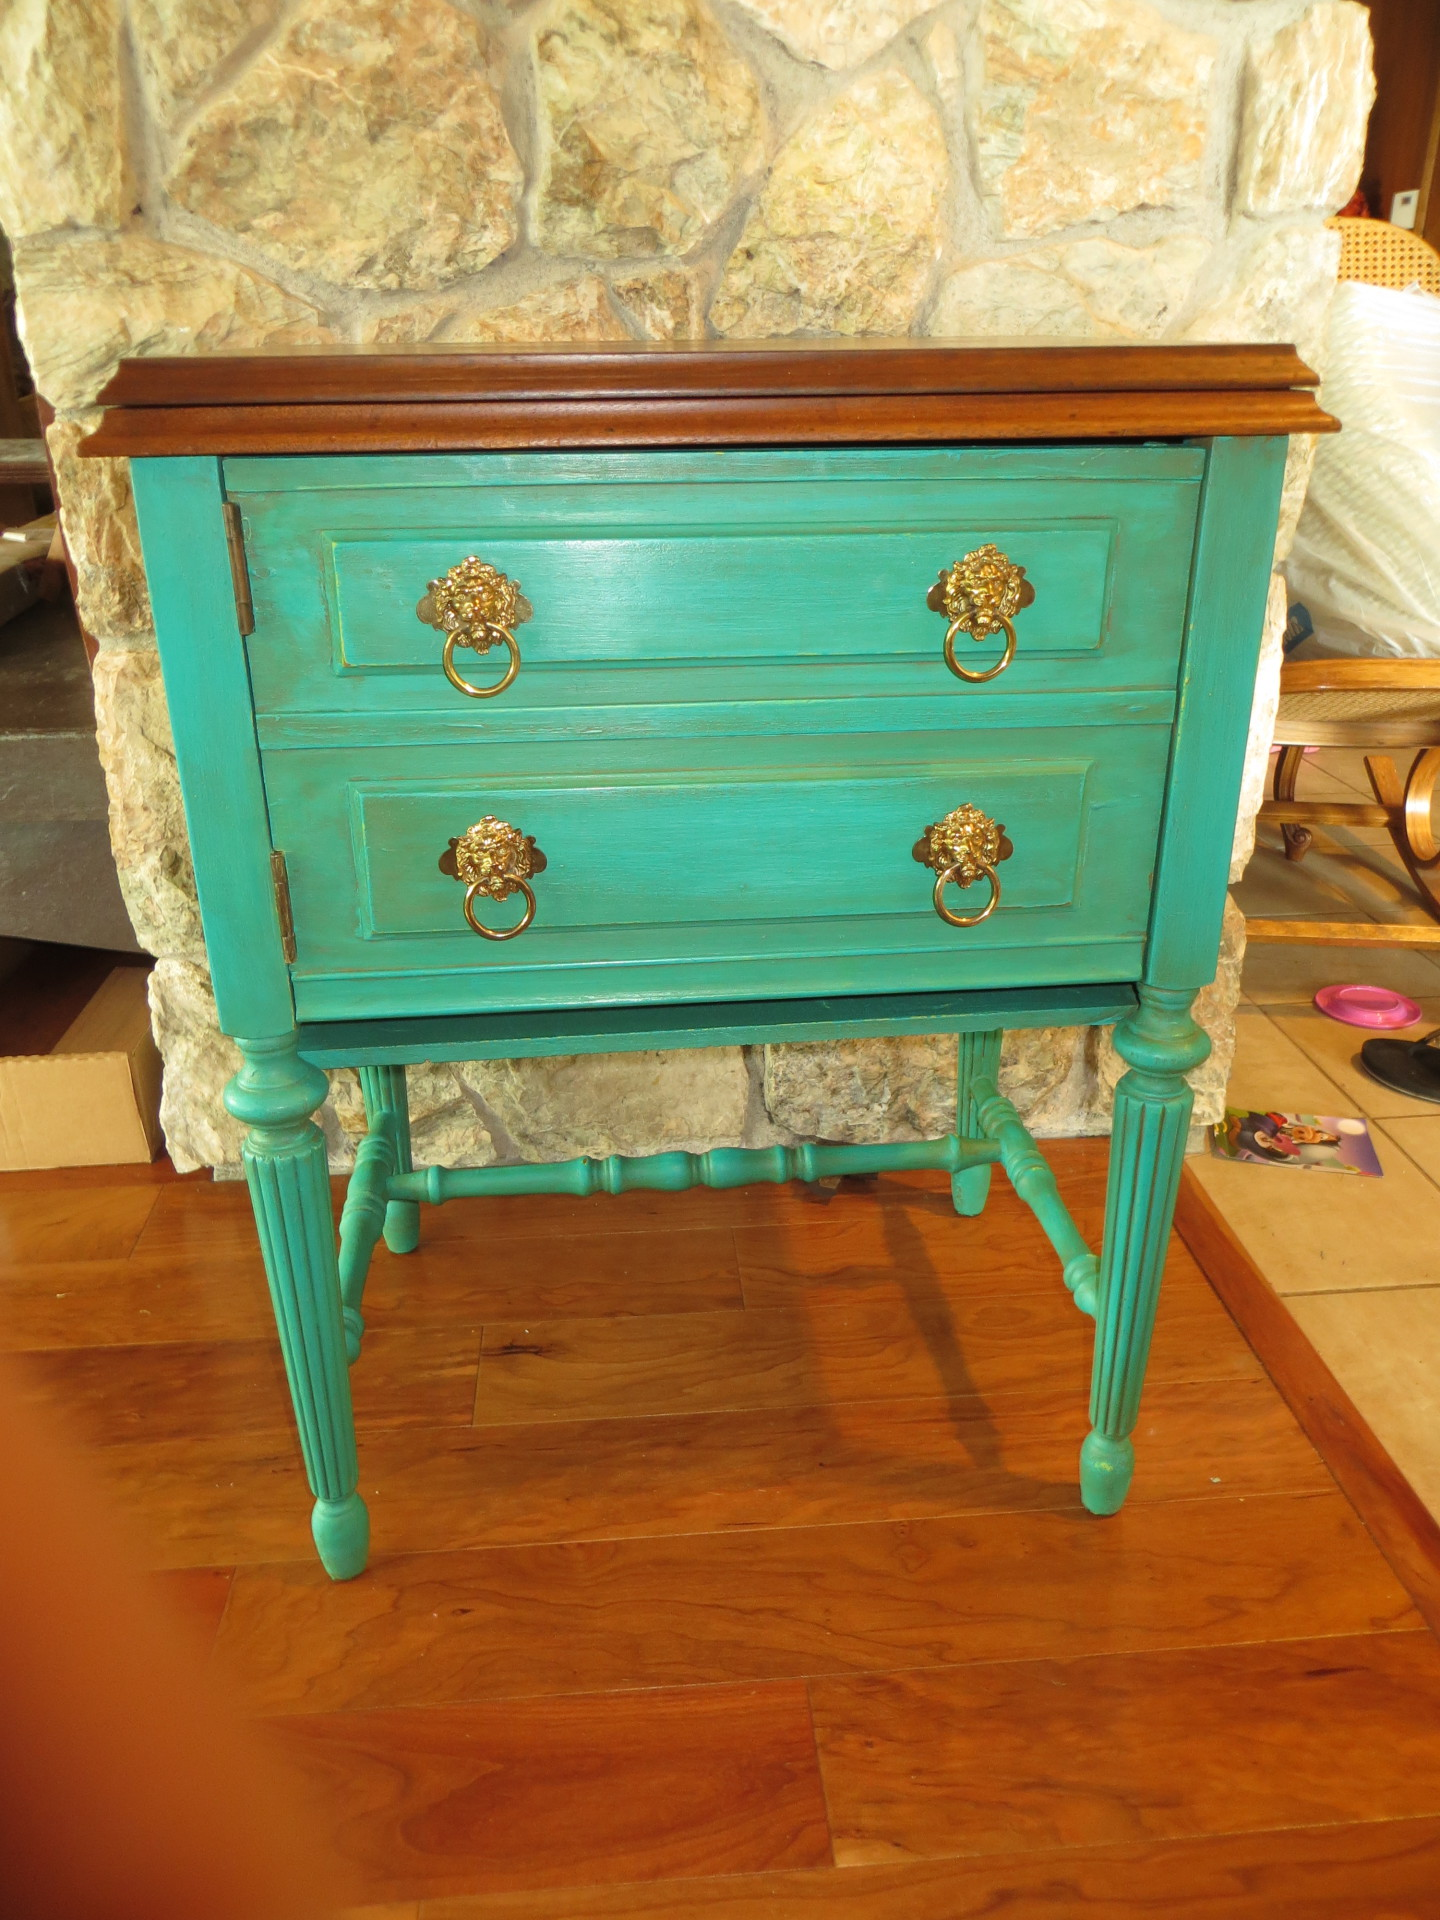 Sewing Cabinet Gets a Pop of Color